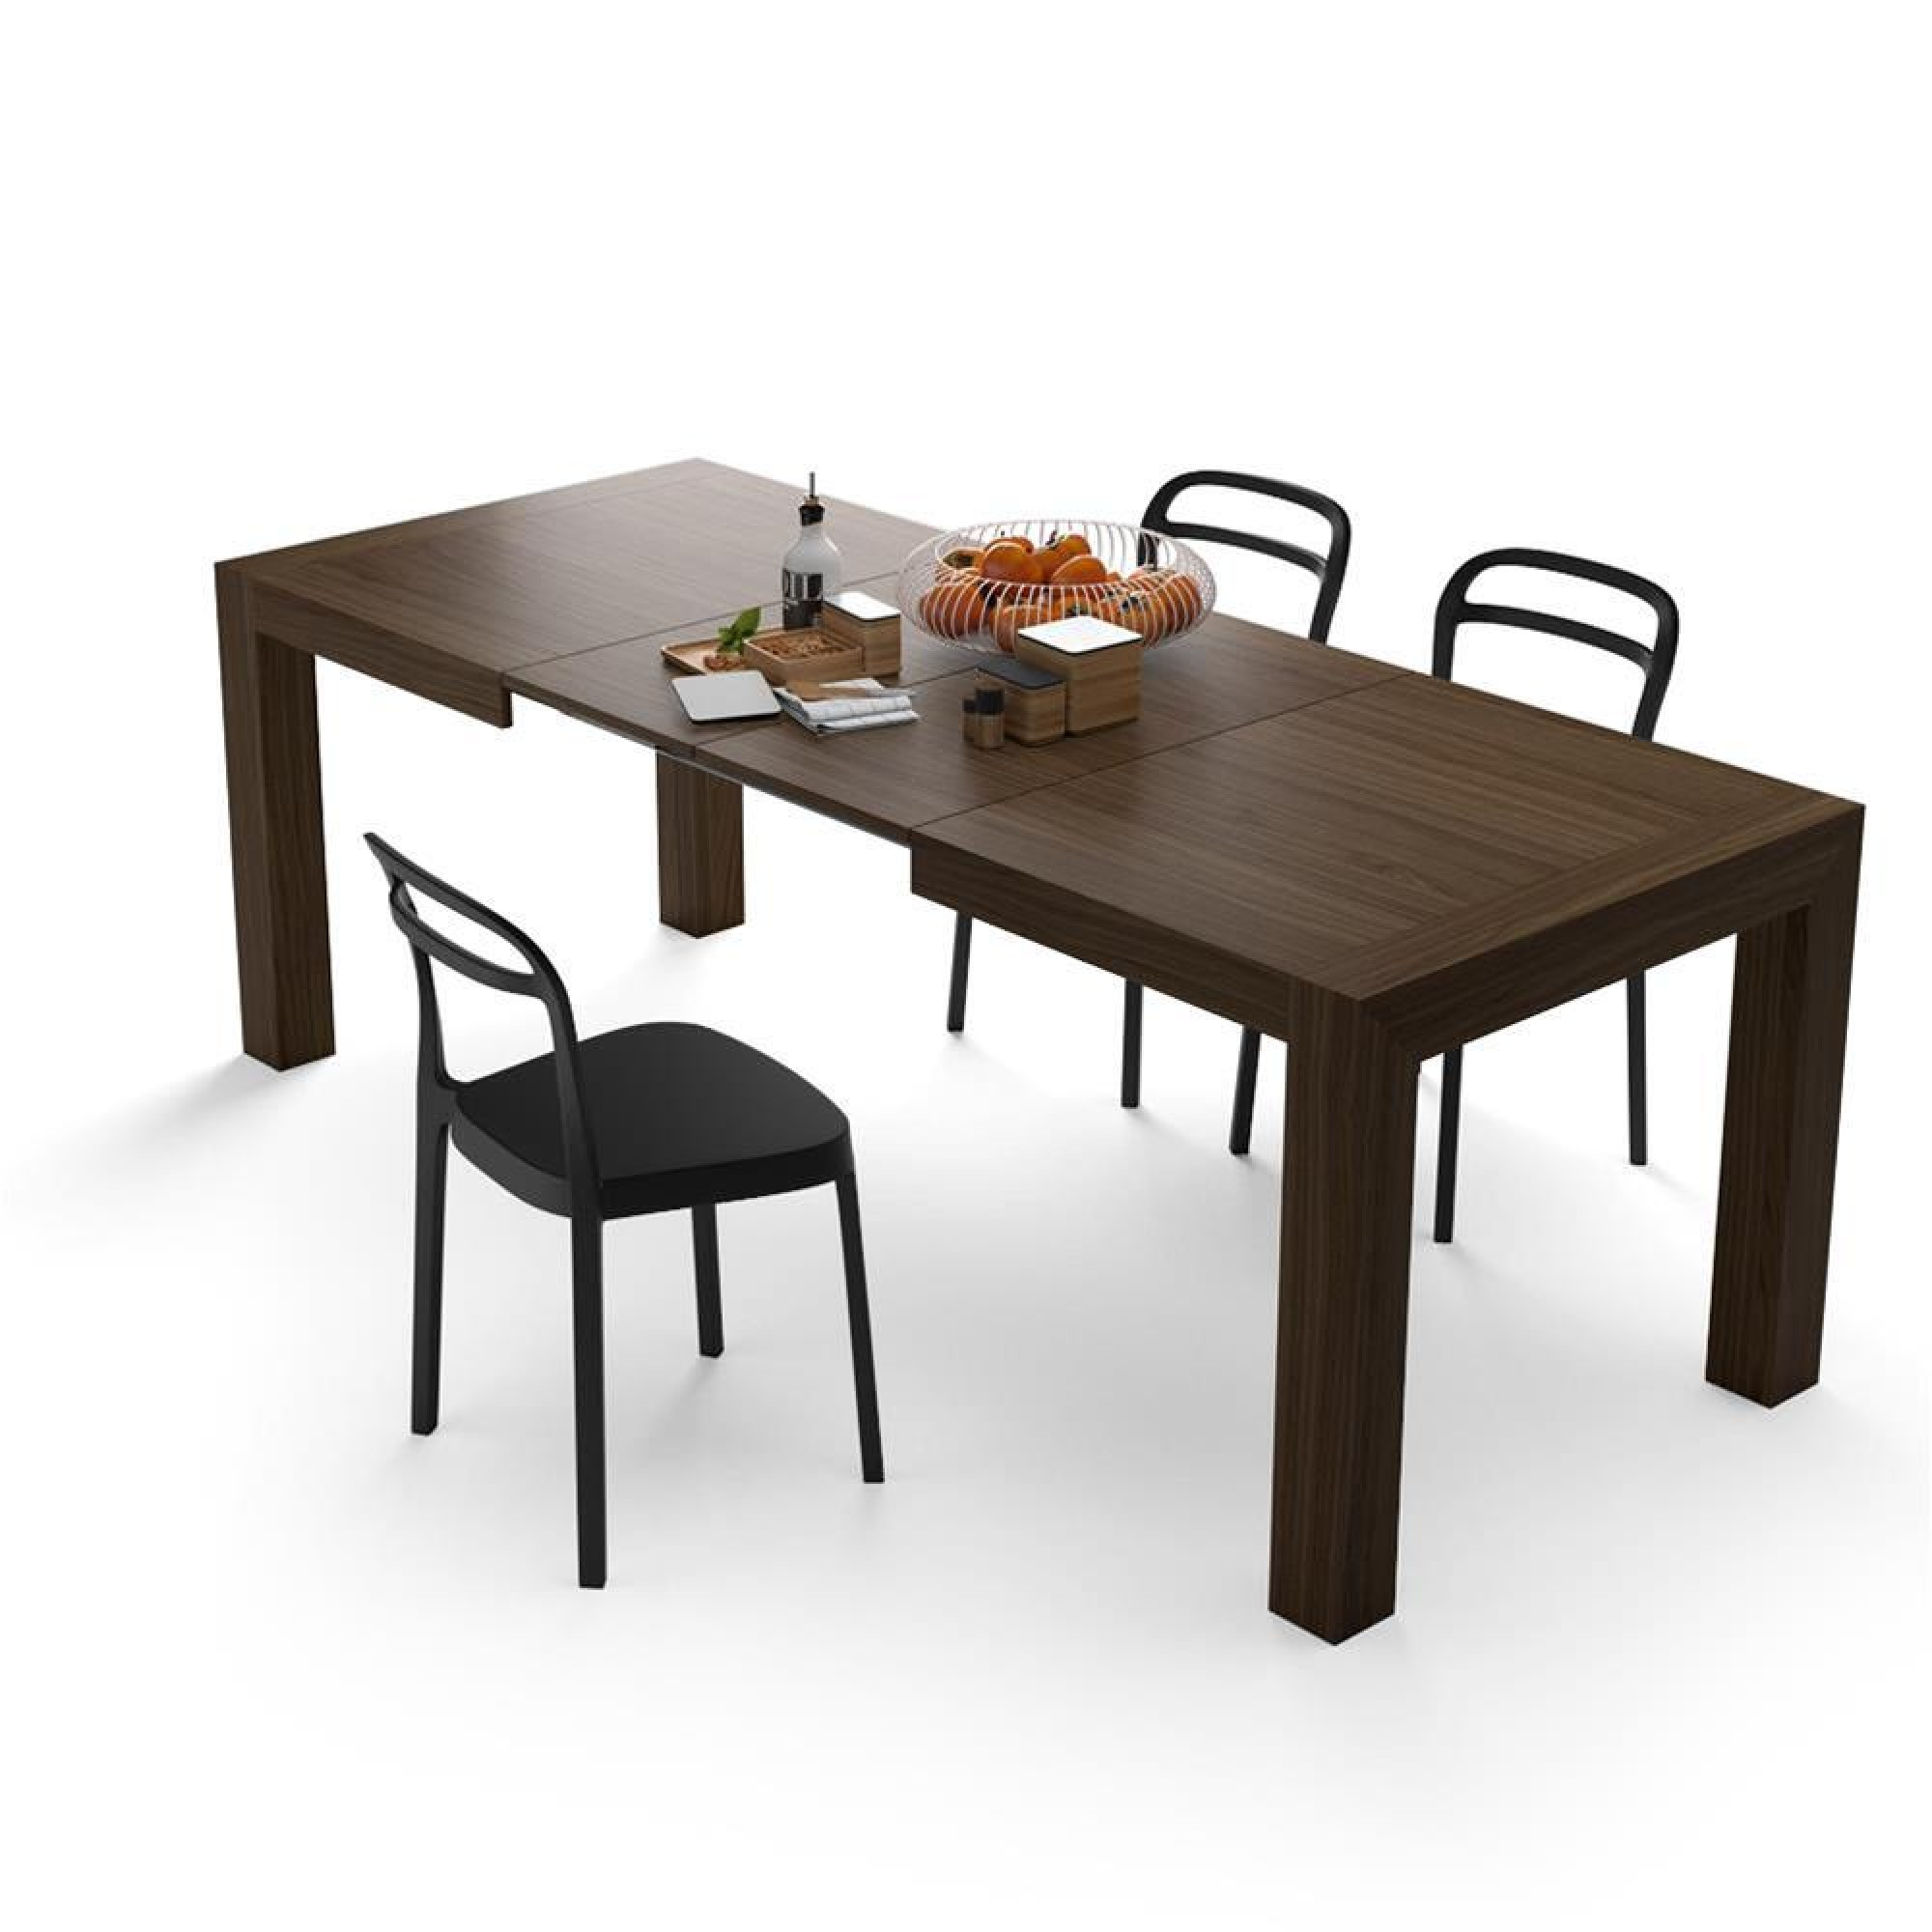 Iacopo Modern Extendable Table, Canaletto Walnut